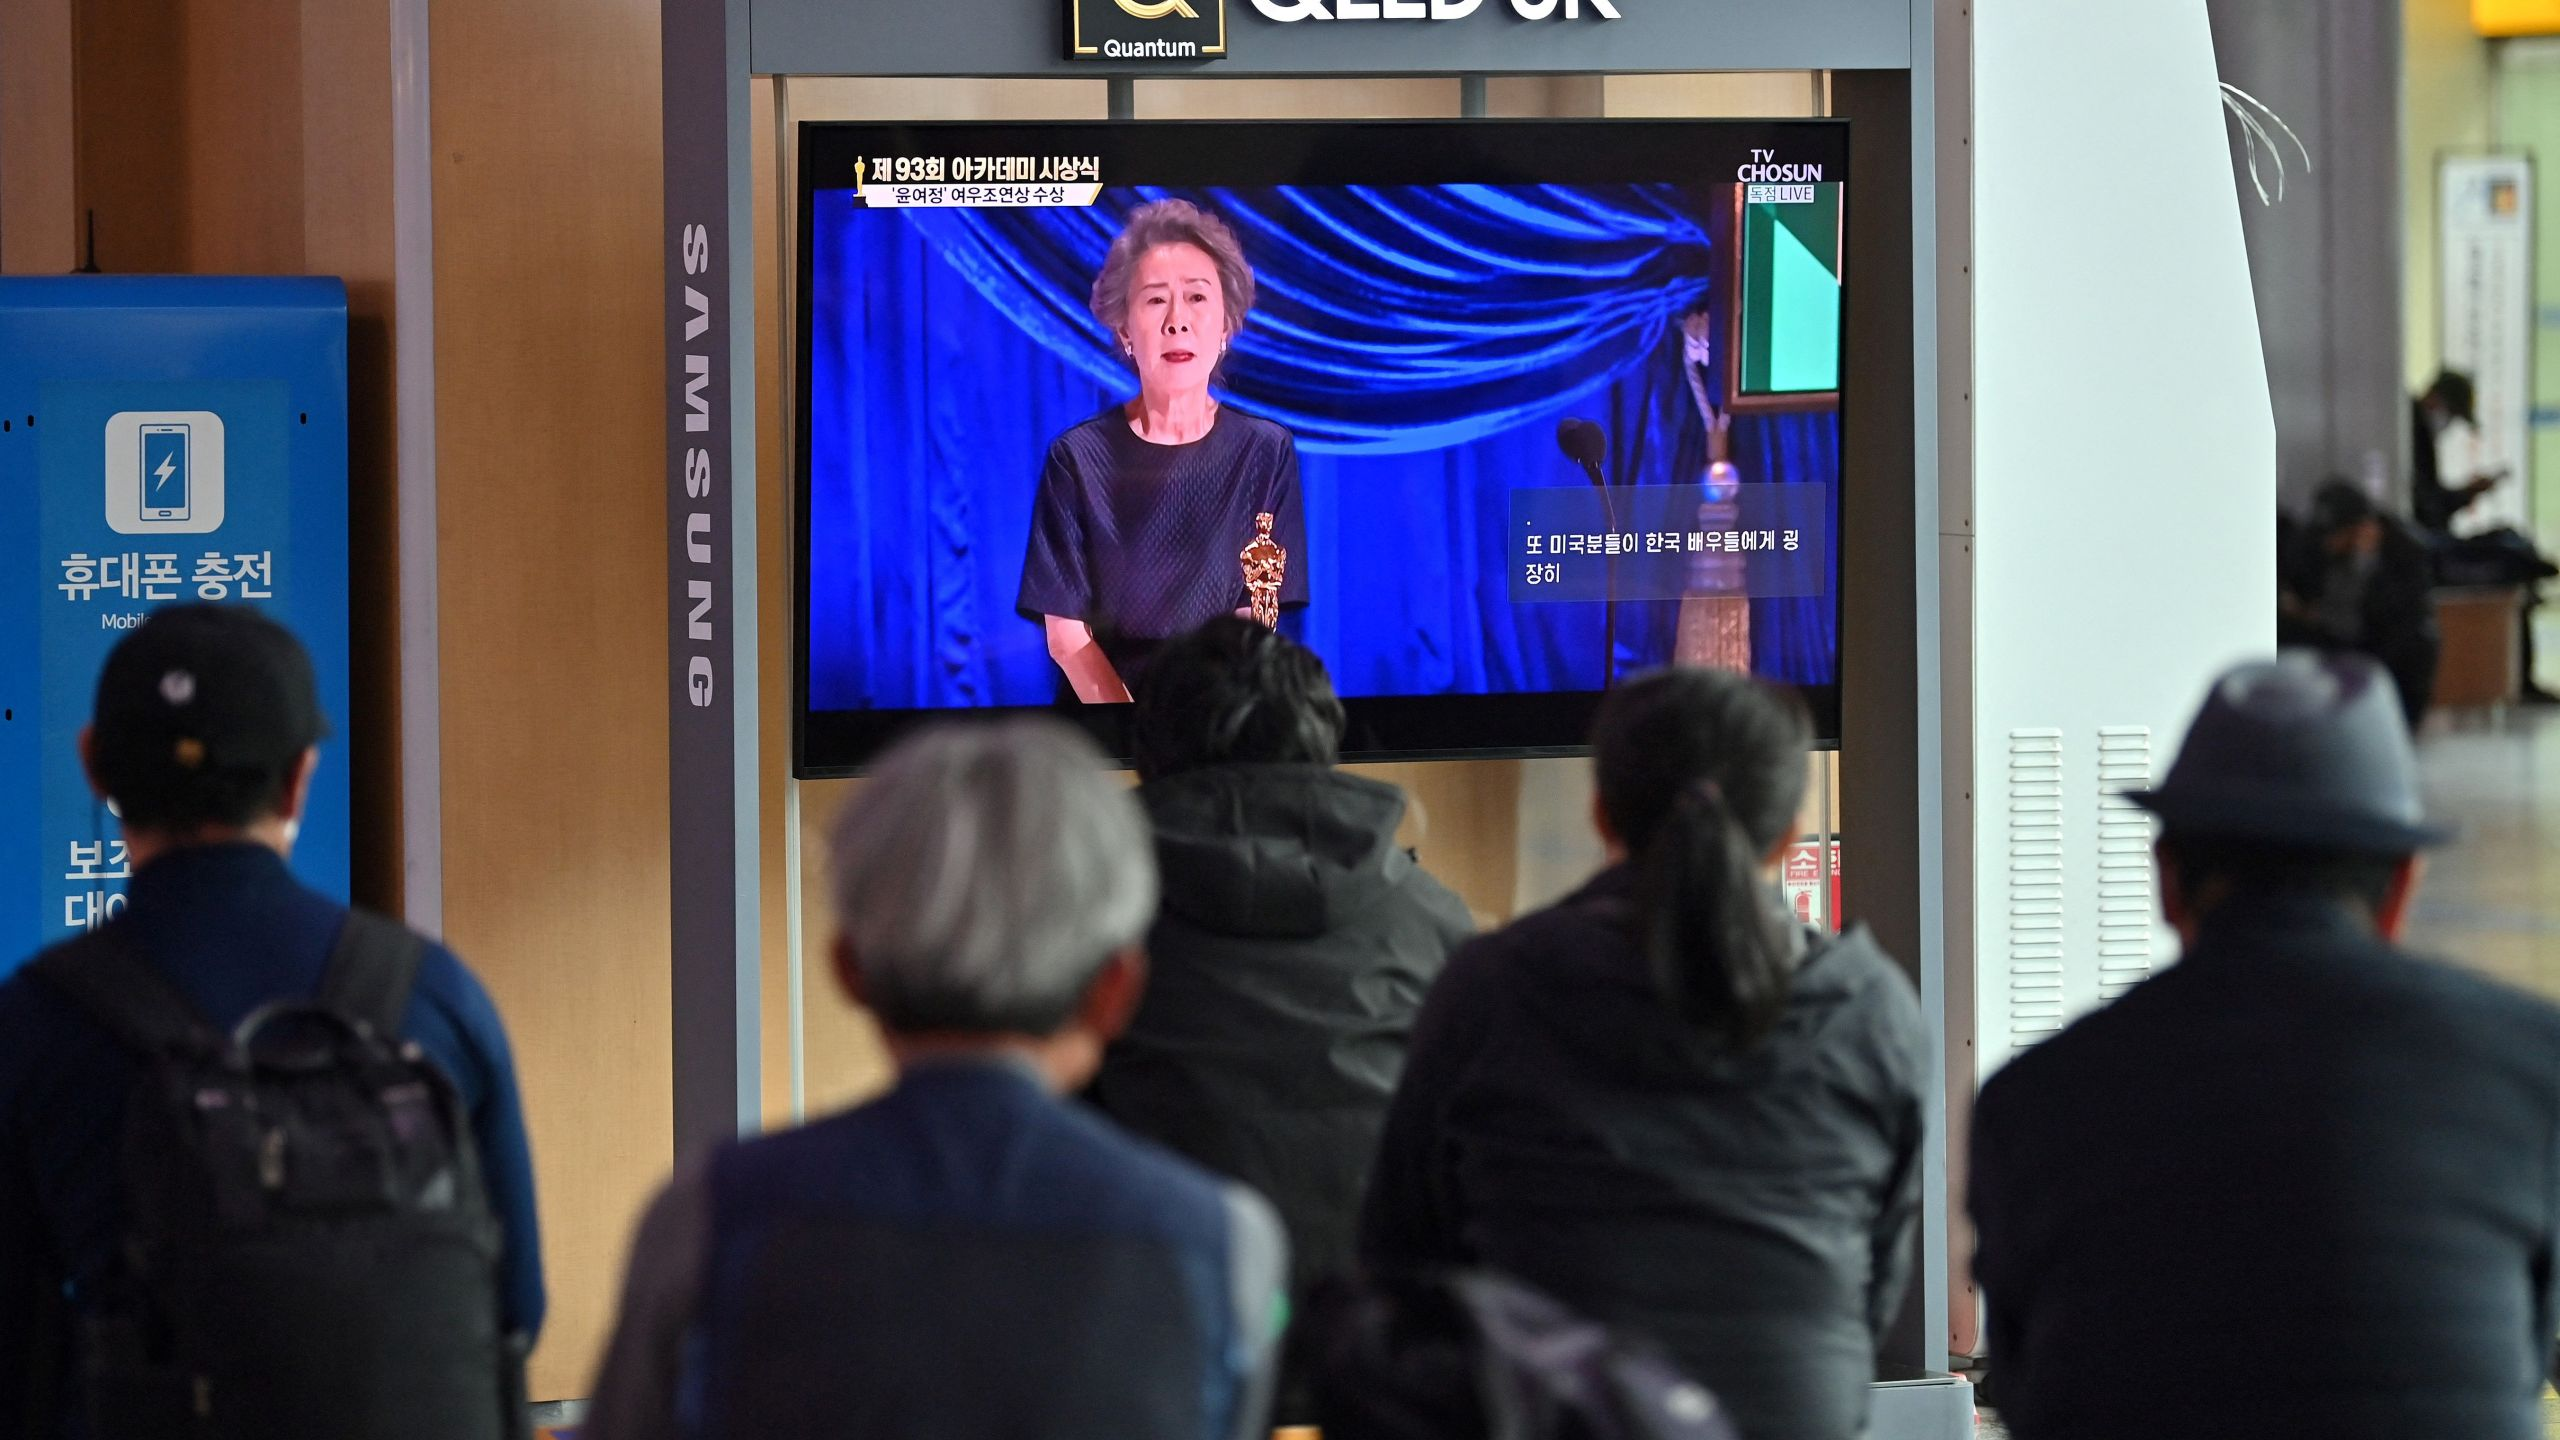 People watch a television screen broadcasting live footage of South Korea's first Oscar-winning actress Youn Yuh-jung speaking at the 93rd Academy Awards ceremony held in Los Angeles, at Seoul railway station in Seoul on April 26, 2021. (JUNG YEON-JE/AFP via Getty Images)